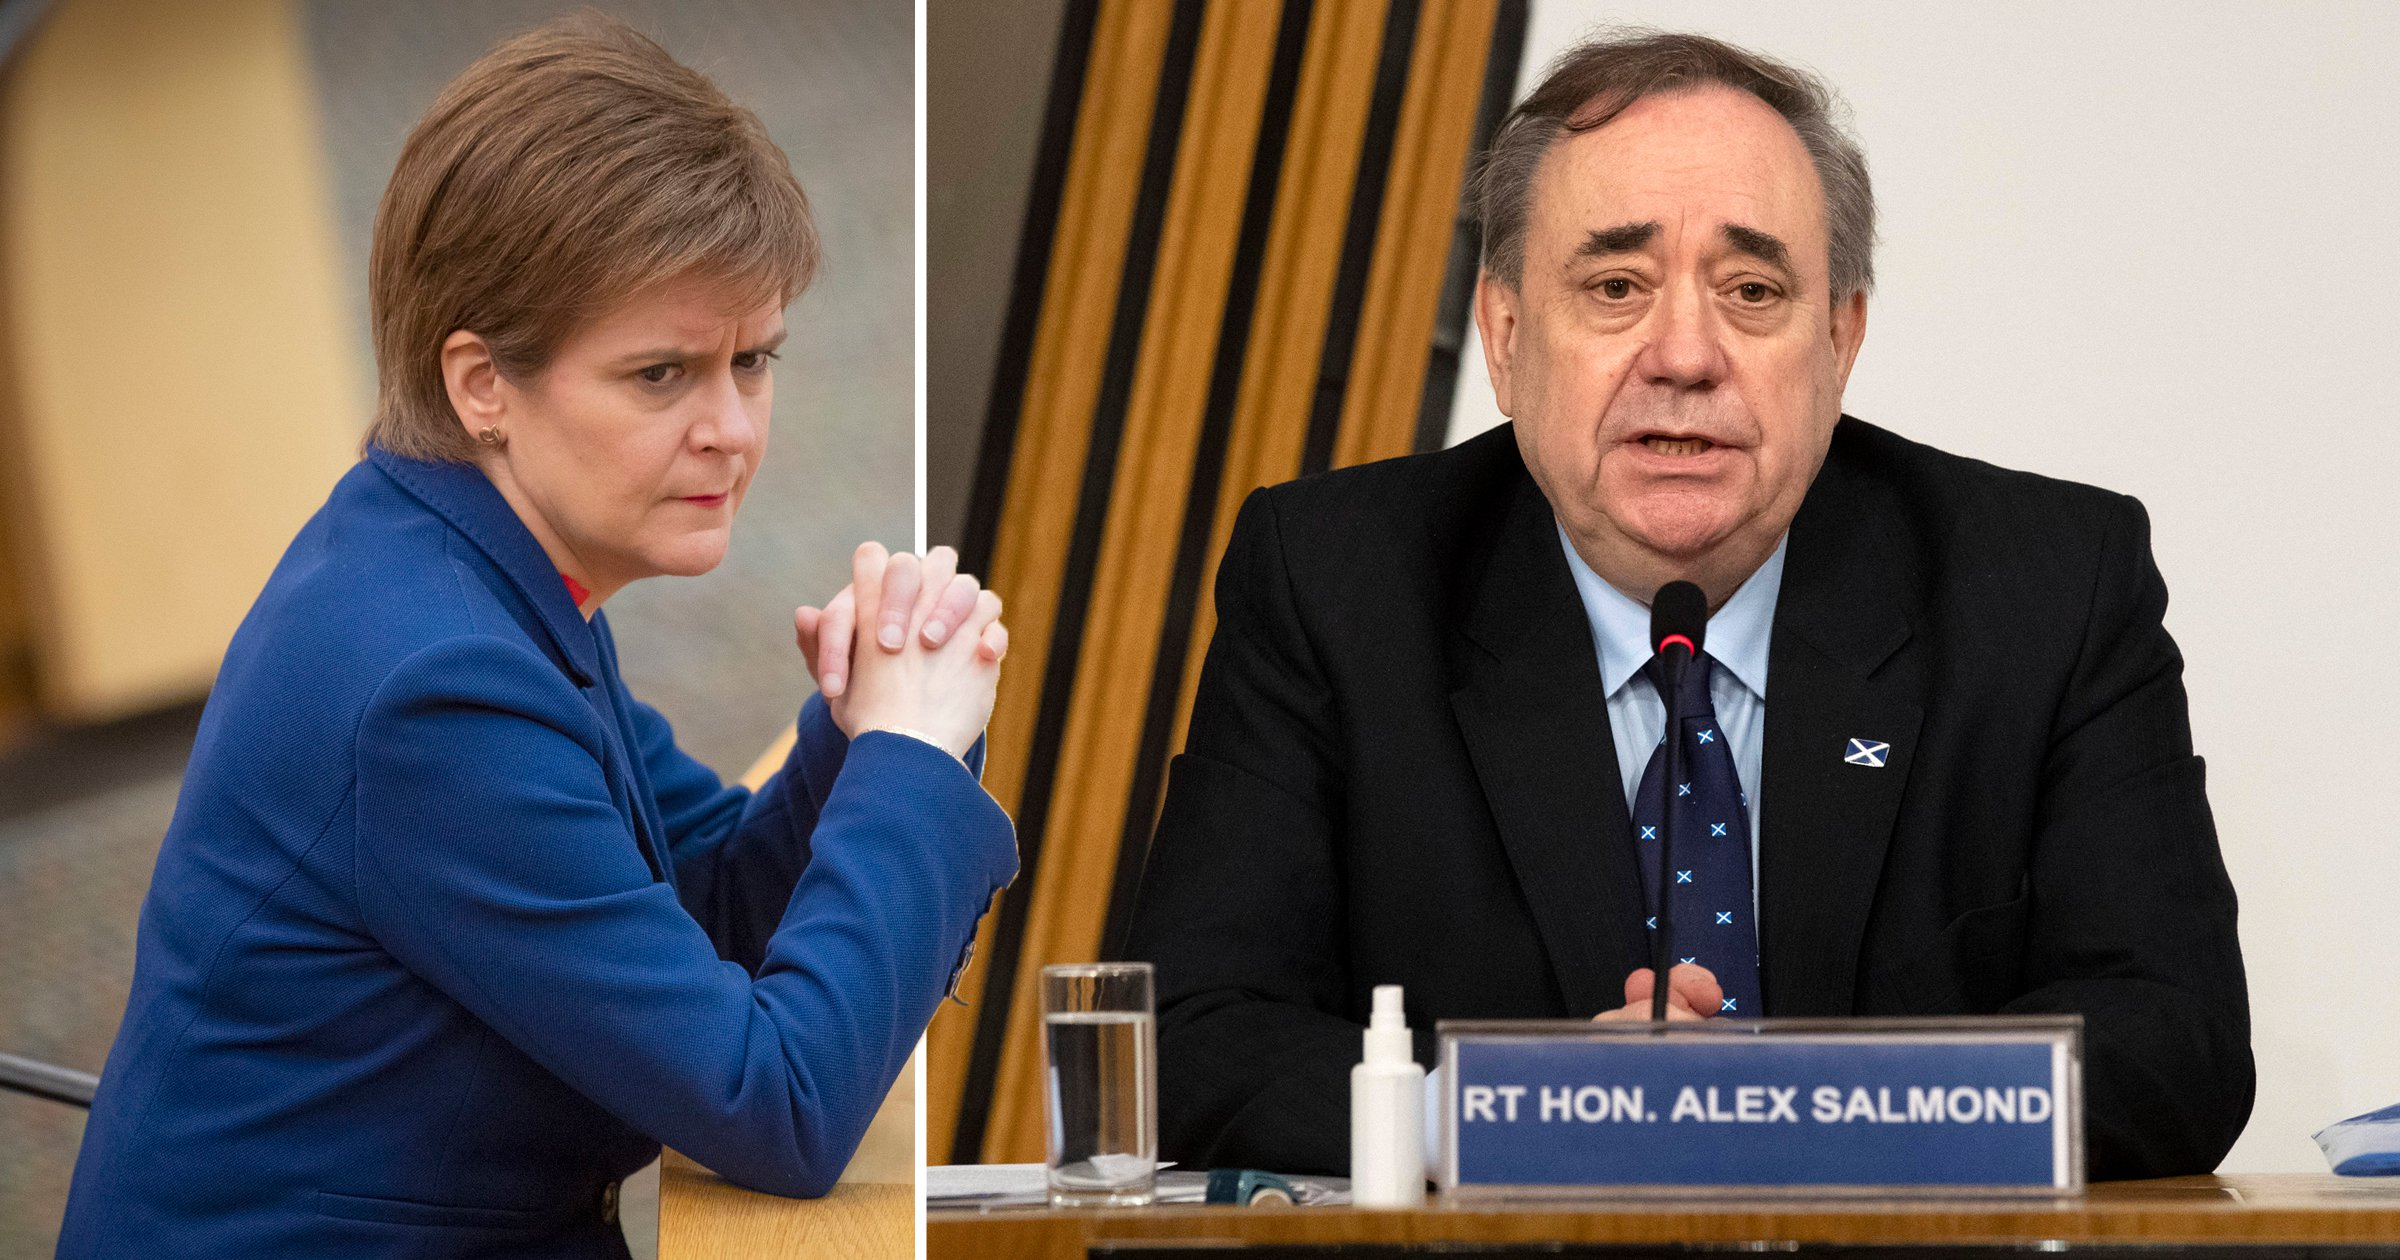 Nicola Sturgeon facing vote of no confidence over Alex Salmond case legal advice